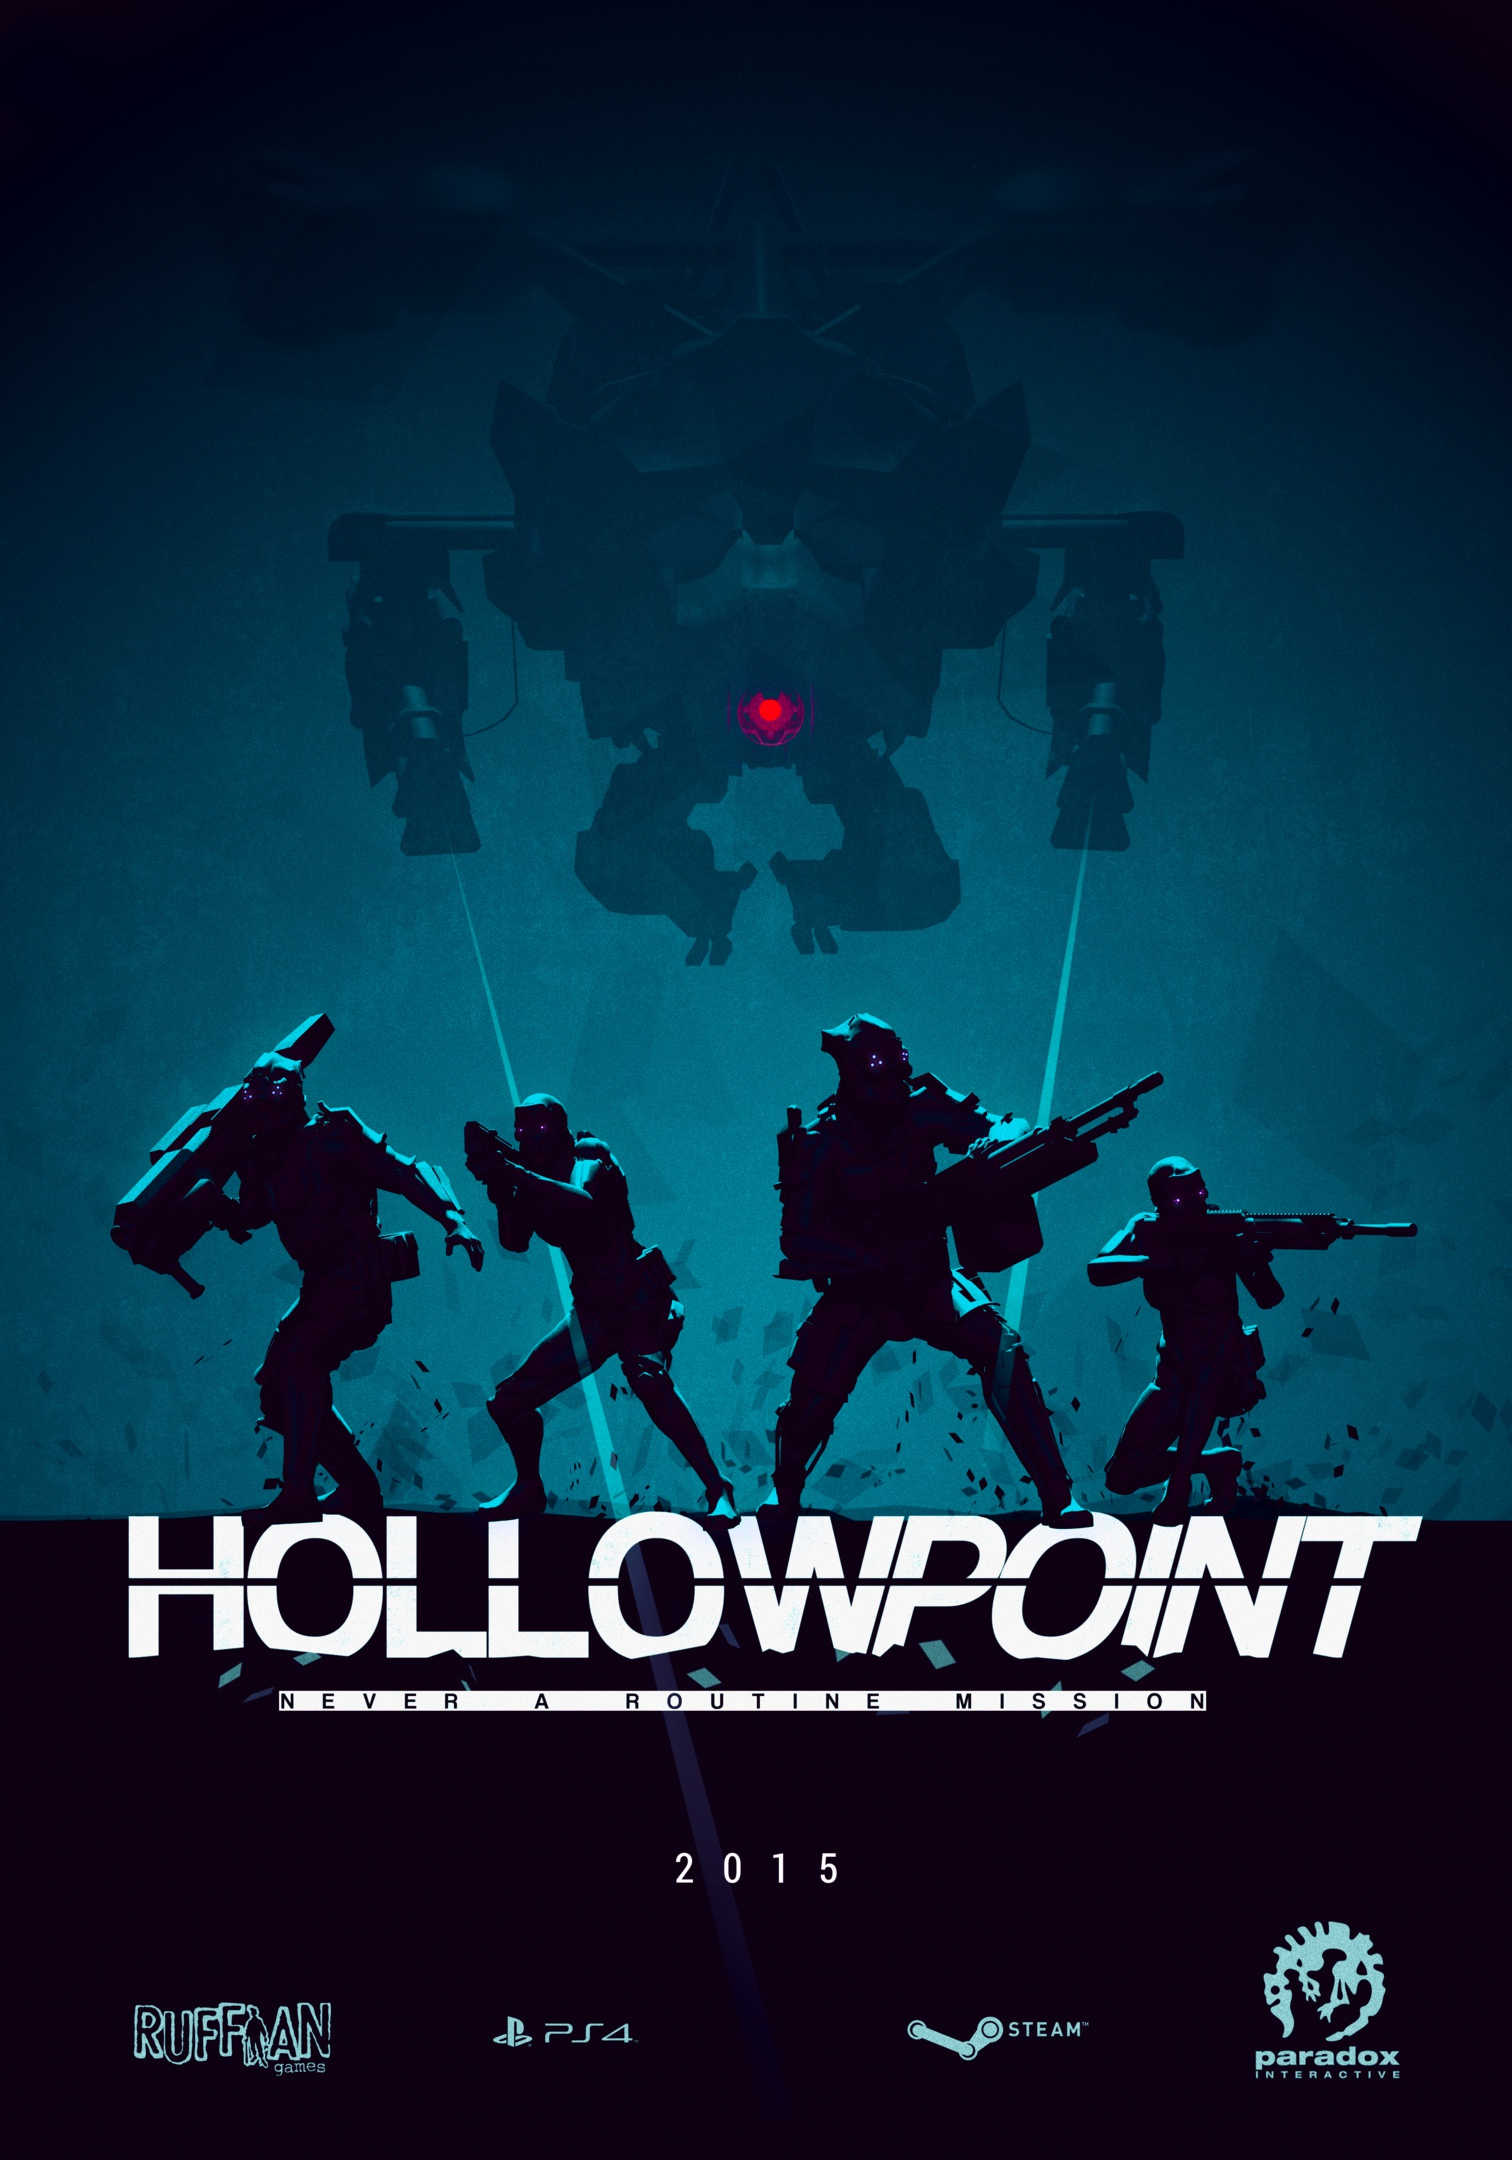 Hollowpoint (Заморожена)